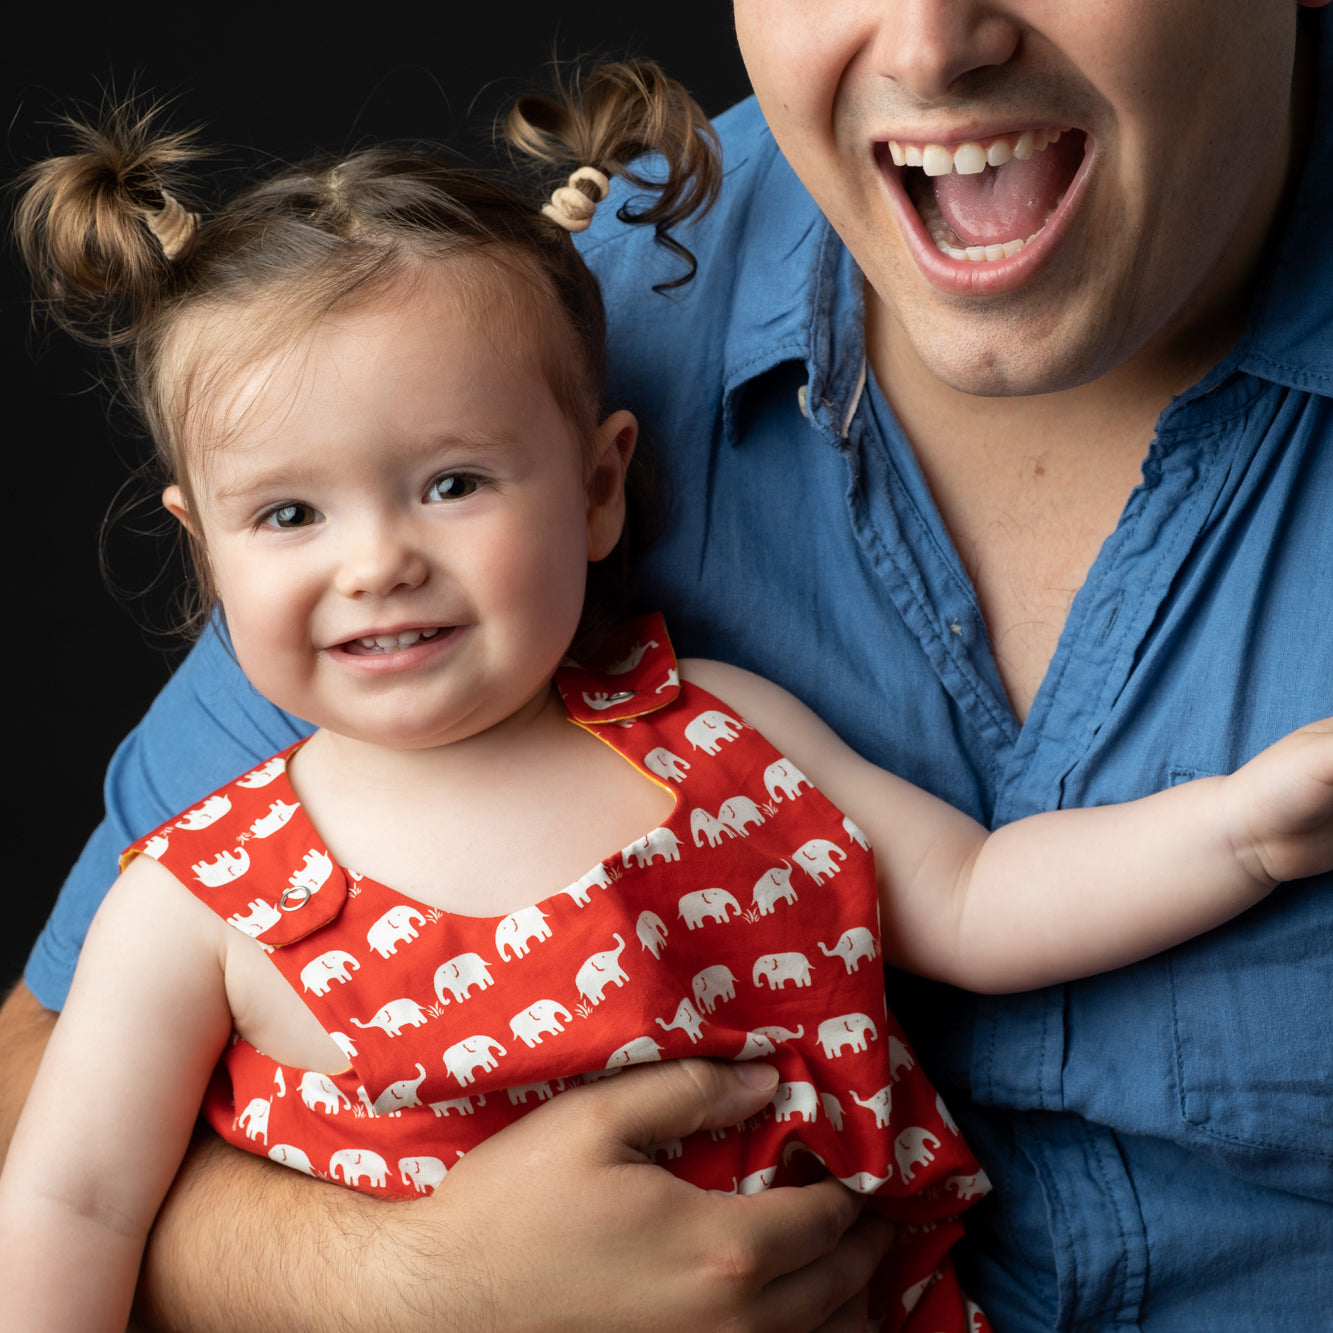 Dad_in_blue_shirts_squeezing_girl_in_red_dress_tightly2.jpg